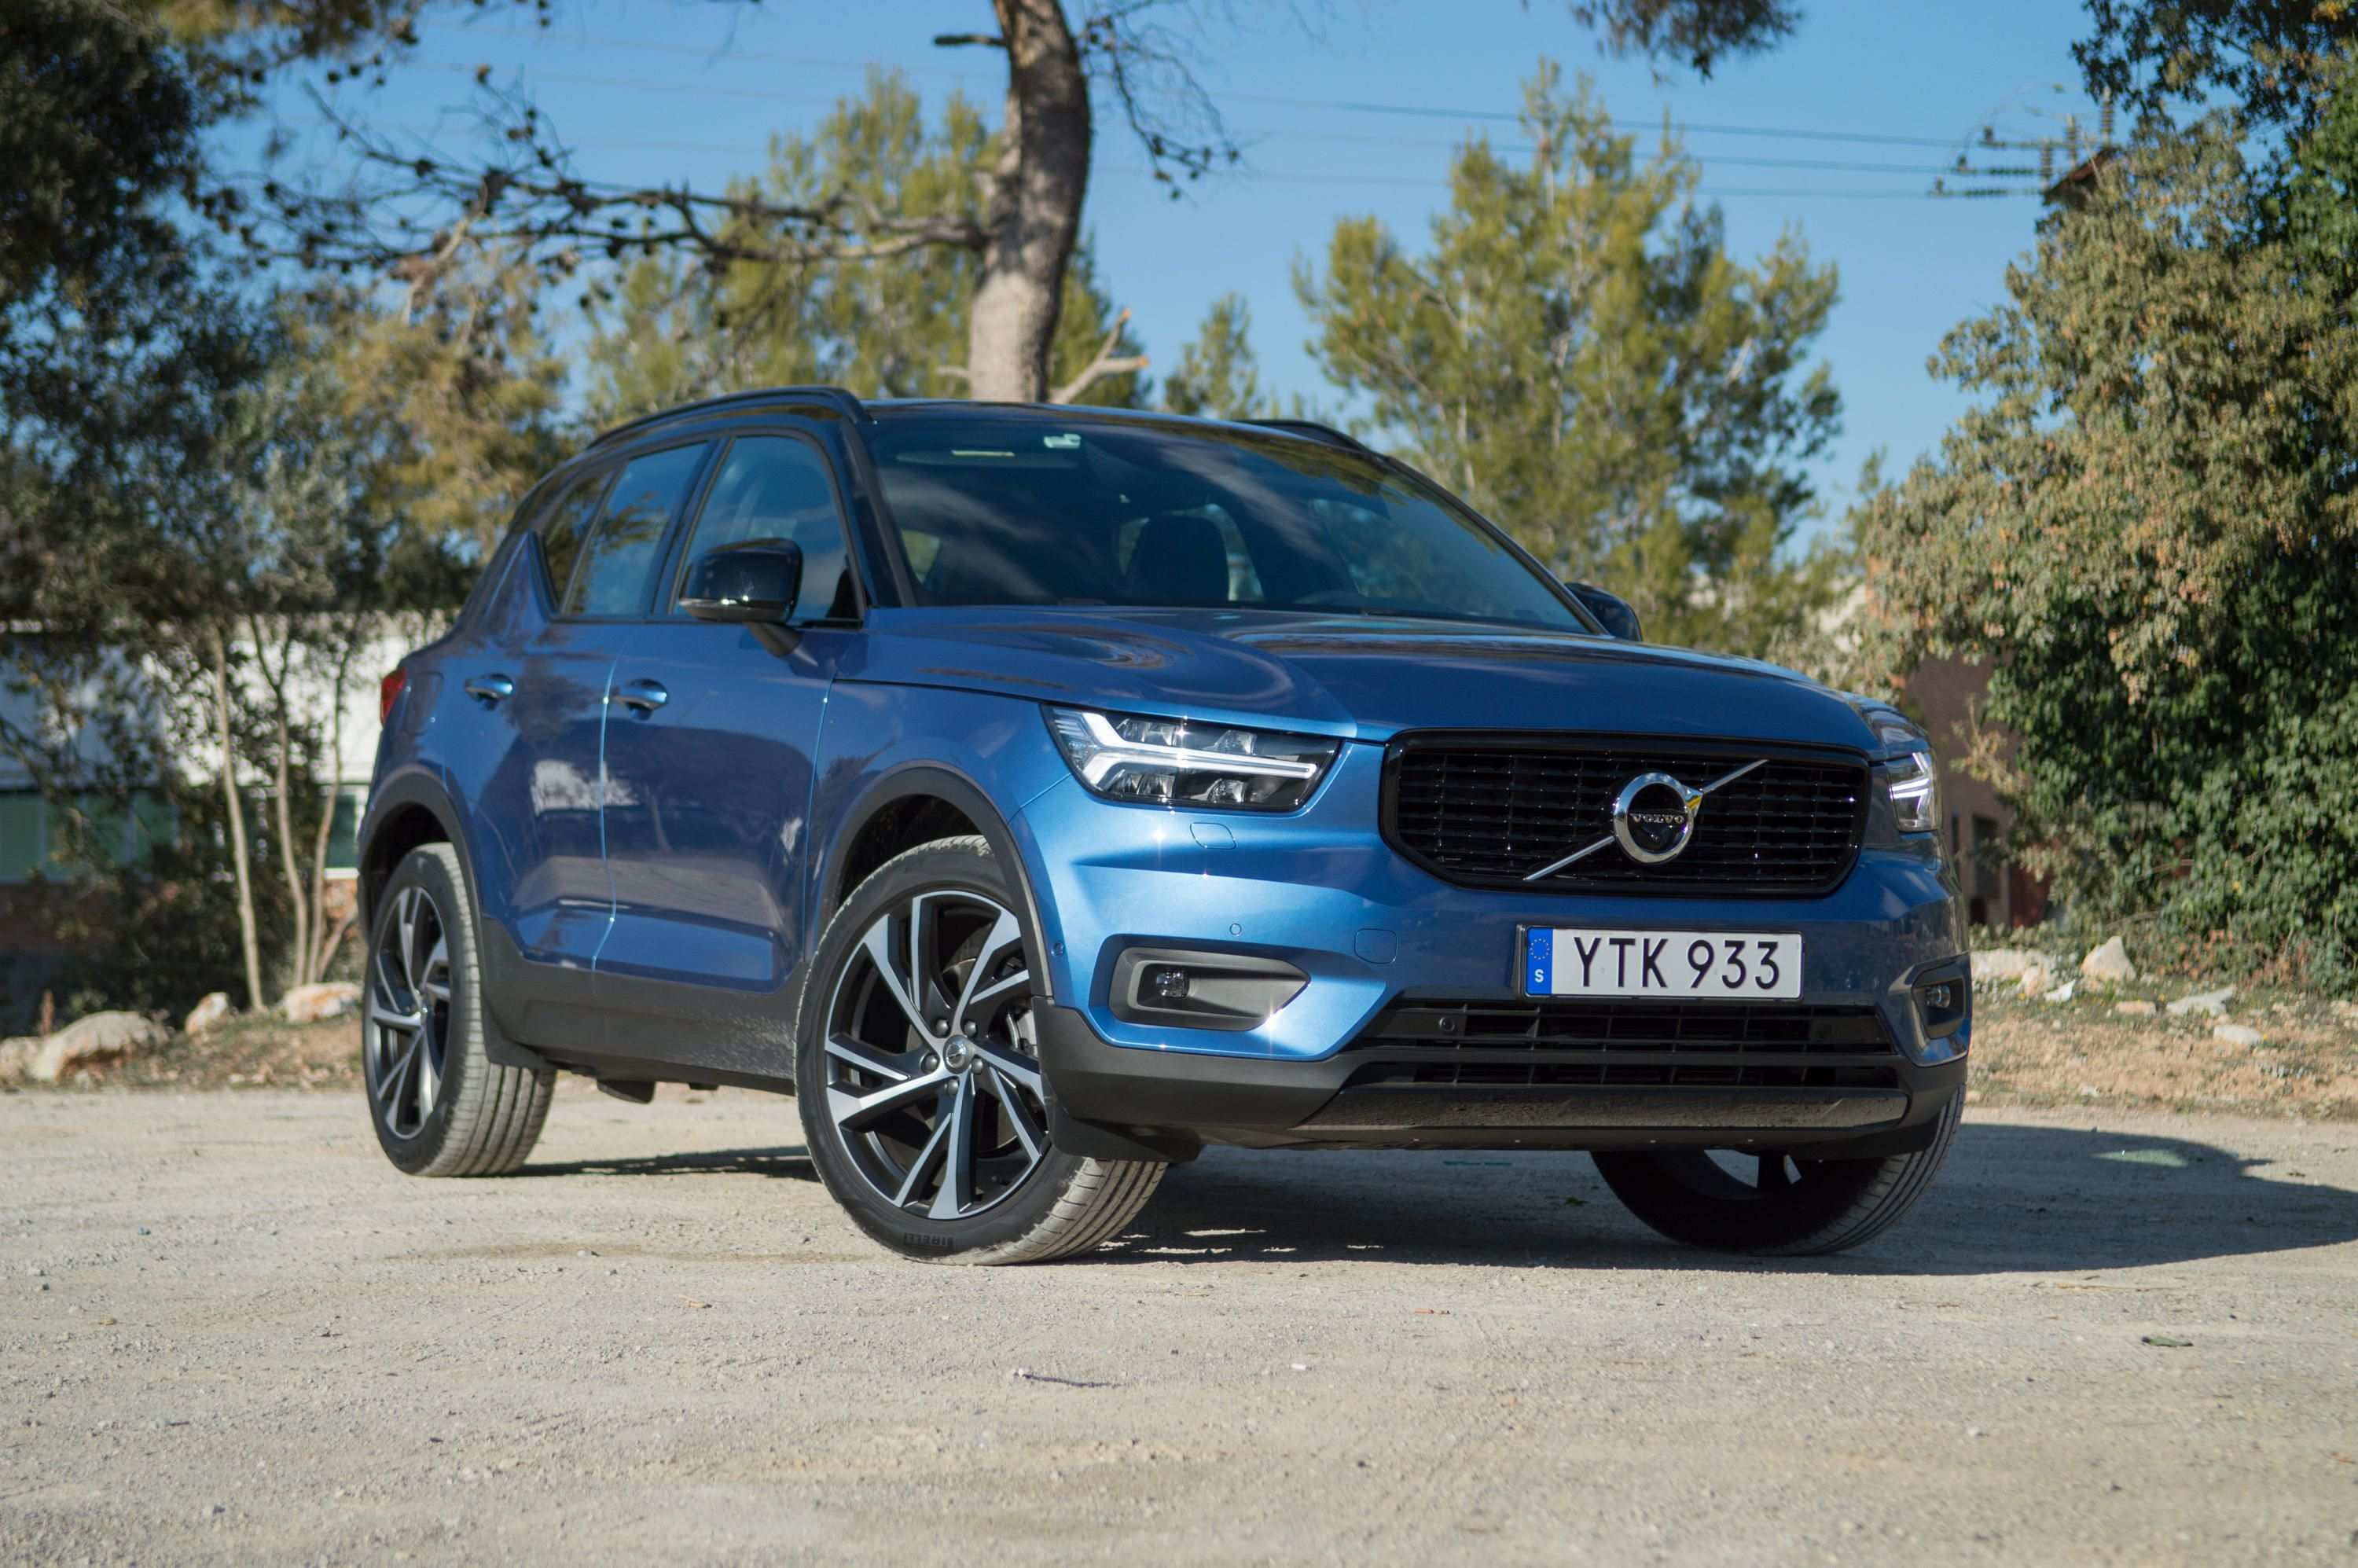 91 Gallery of 2019 Volvo Xc40 Gas Mileage Model for 2019 Volvo Xc40 Gas Mileage